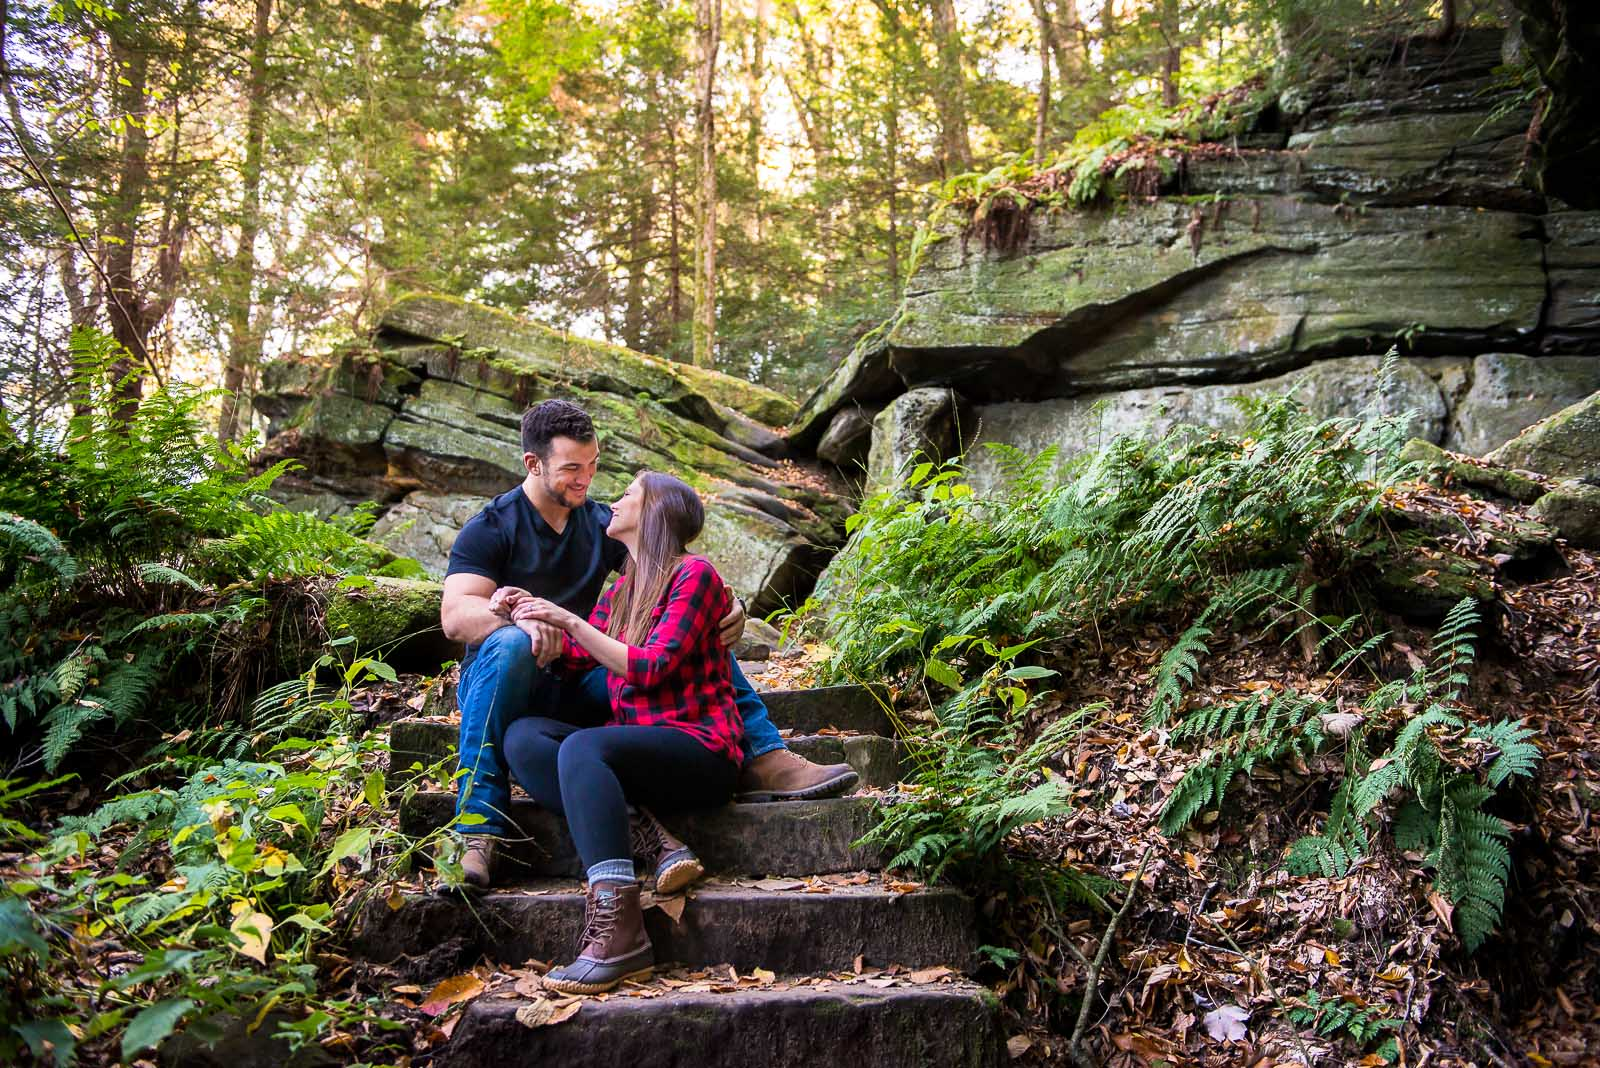 Eric_and_Christy_Photography_Blog_2017_Best_Engagement-14